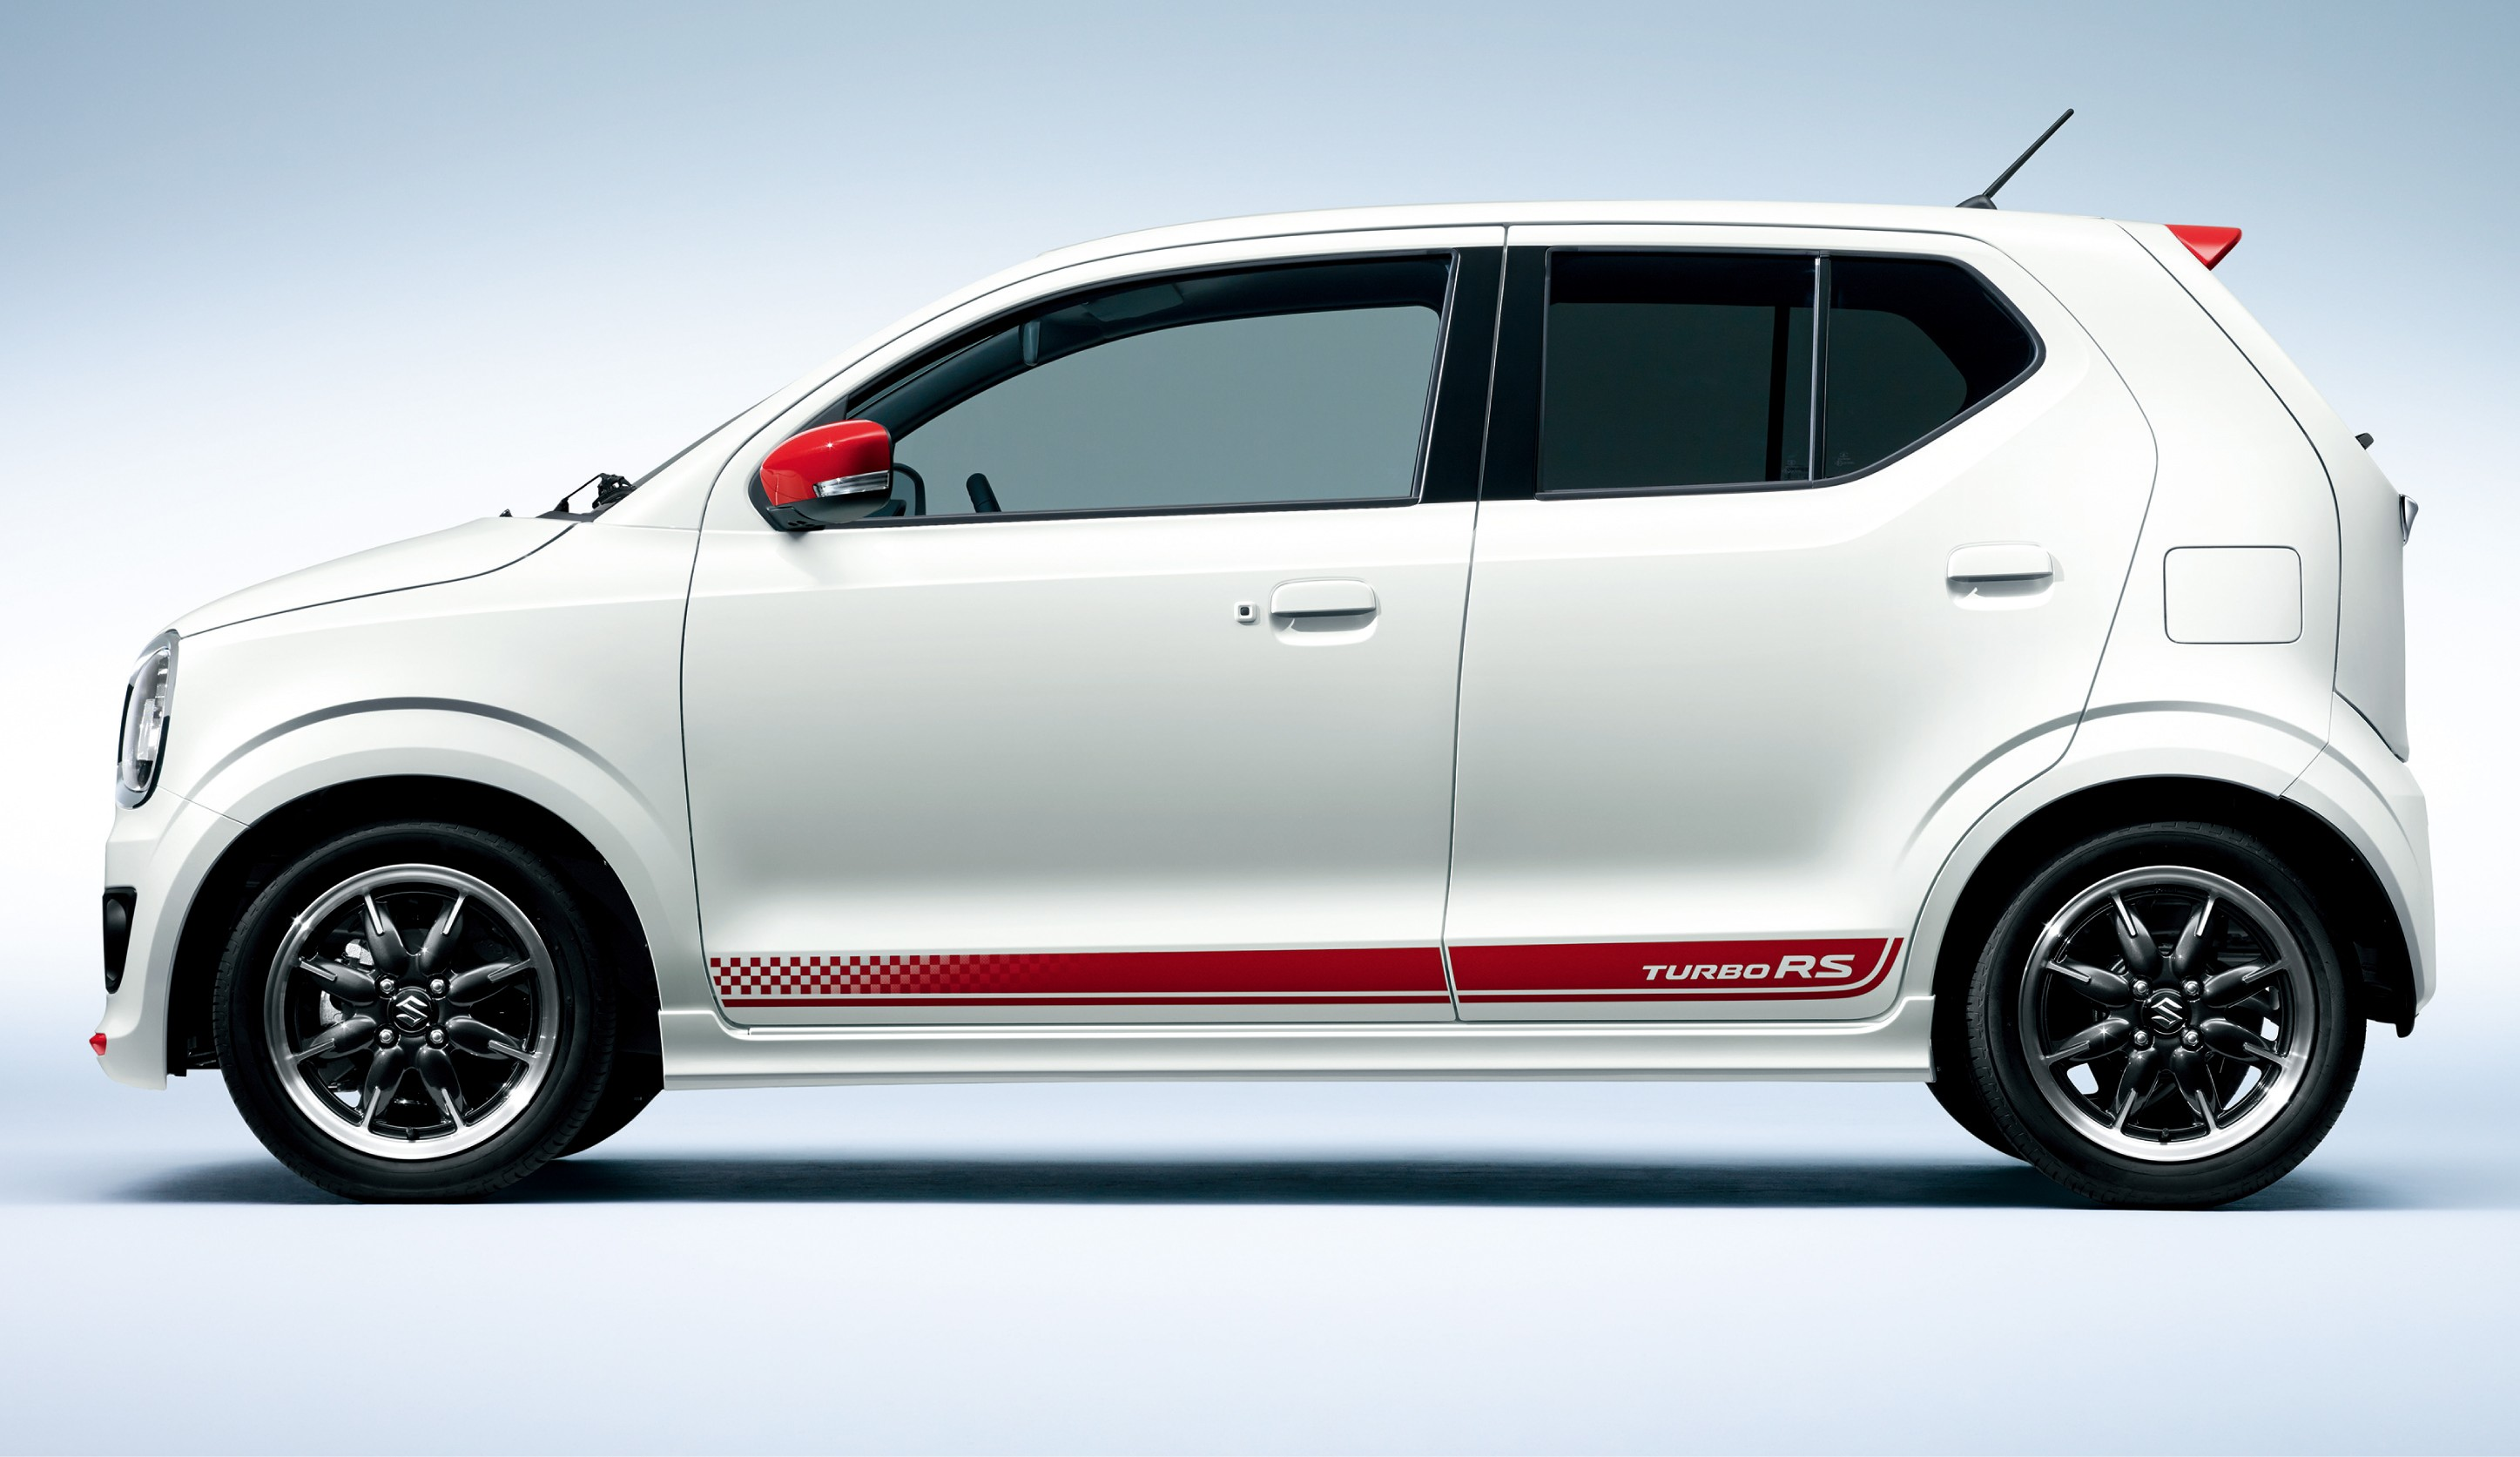 2015 Suzuki Alto Turbo RS 2015 Suzuki Alto Turbo RS ...